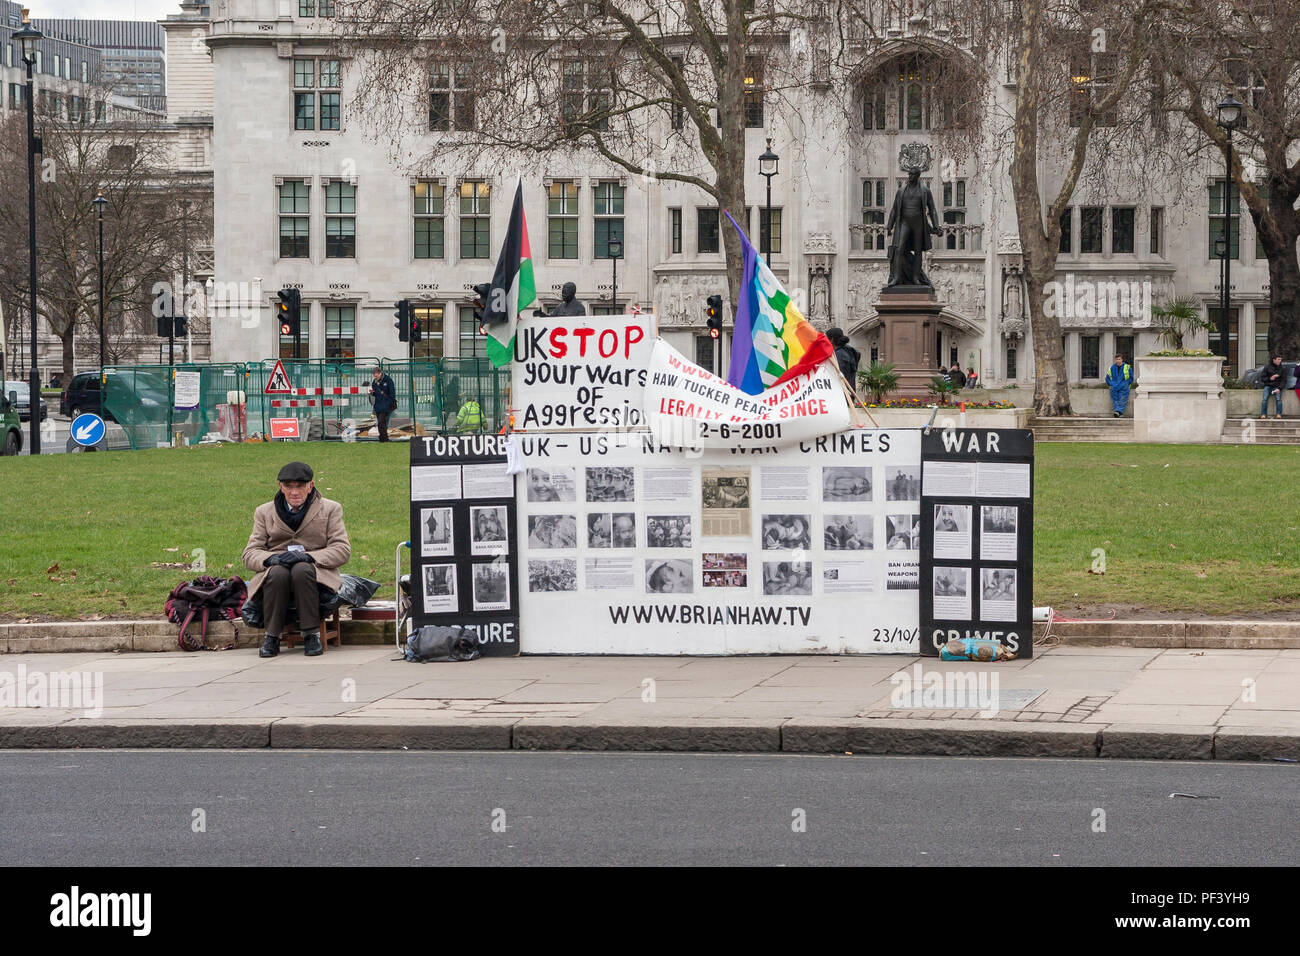 The remains of the Brian Haw peace protest in Parliament Square, London. - Stock Image